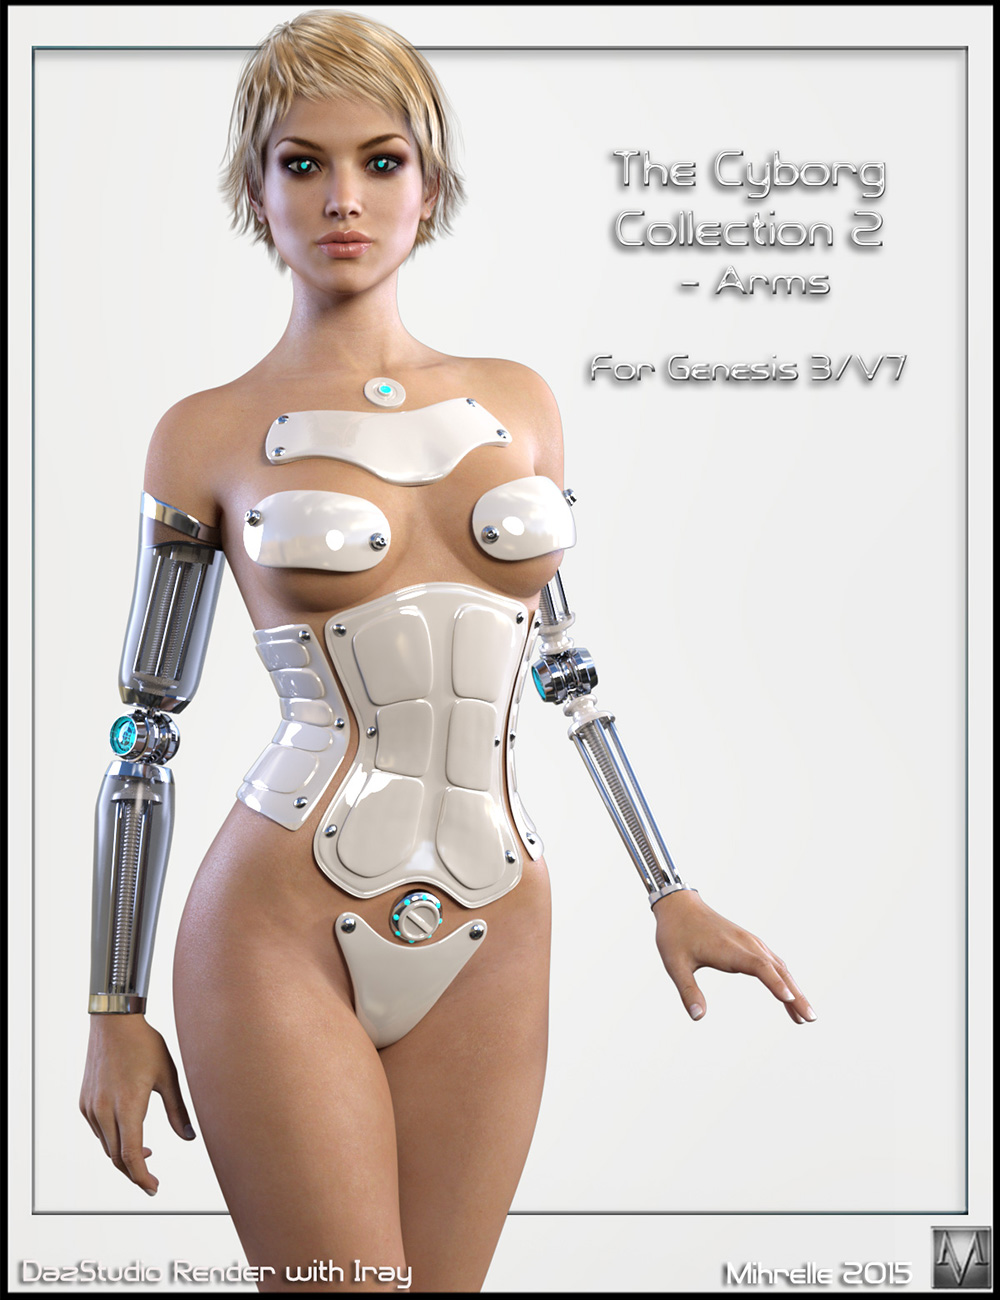 The Cyborg Collection 2 for G3F and V7